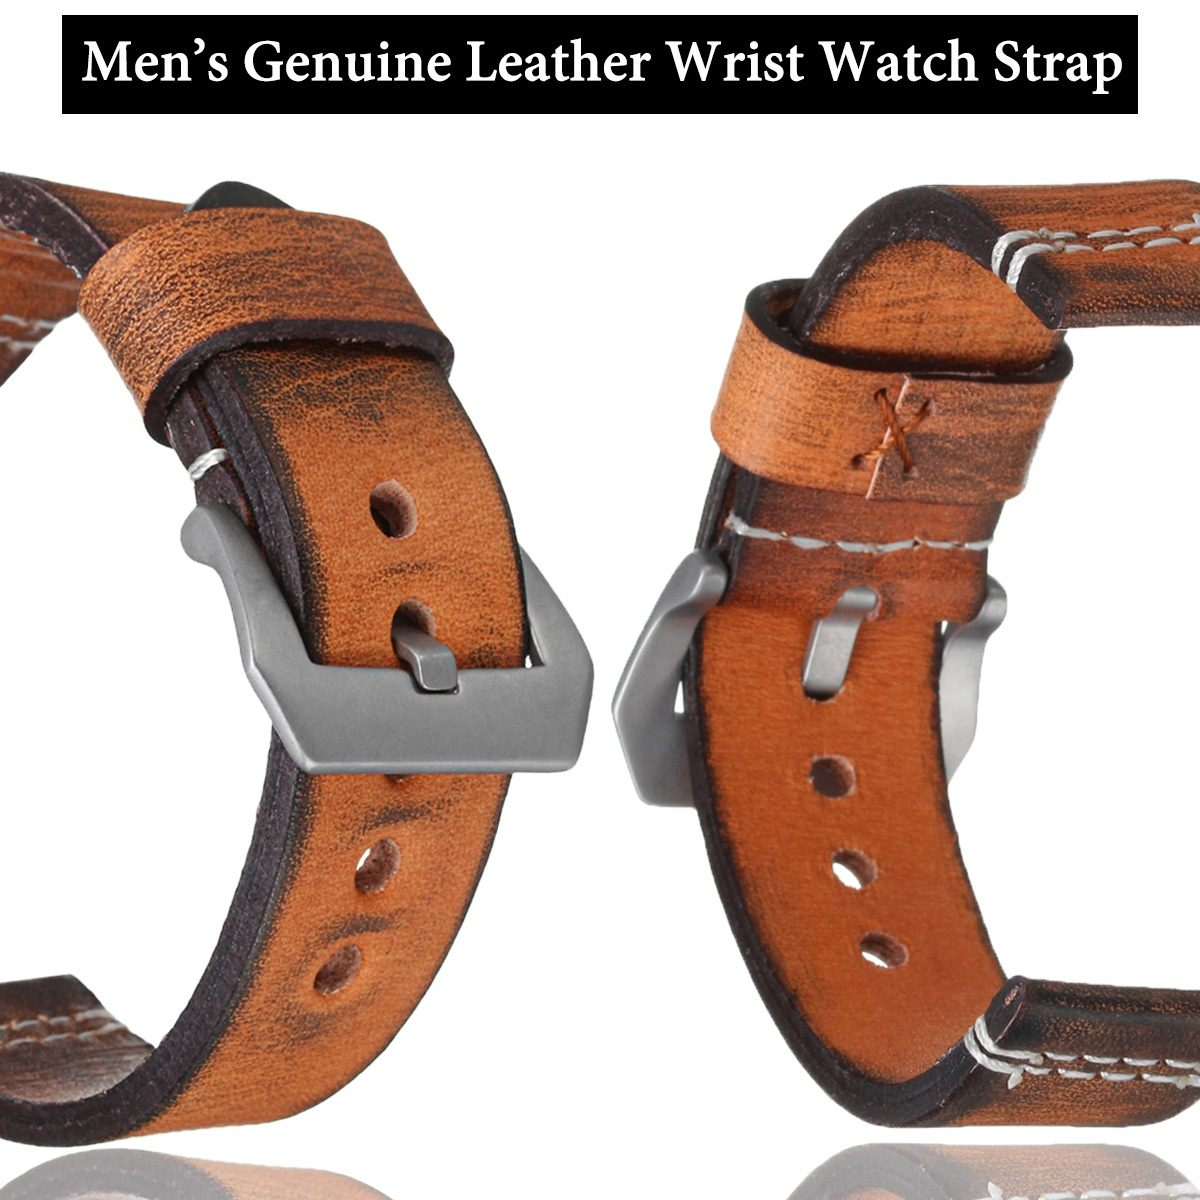 Watchbands Genuine Leather WatchBand Stainless Steel Buckle Clasp watch bands leather strap 22mm 24mm